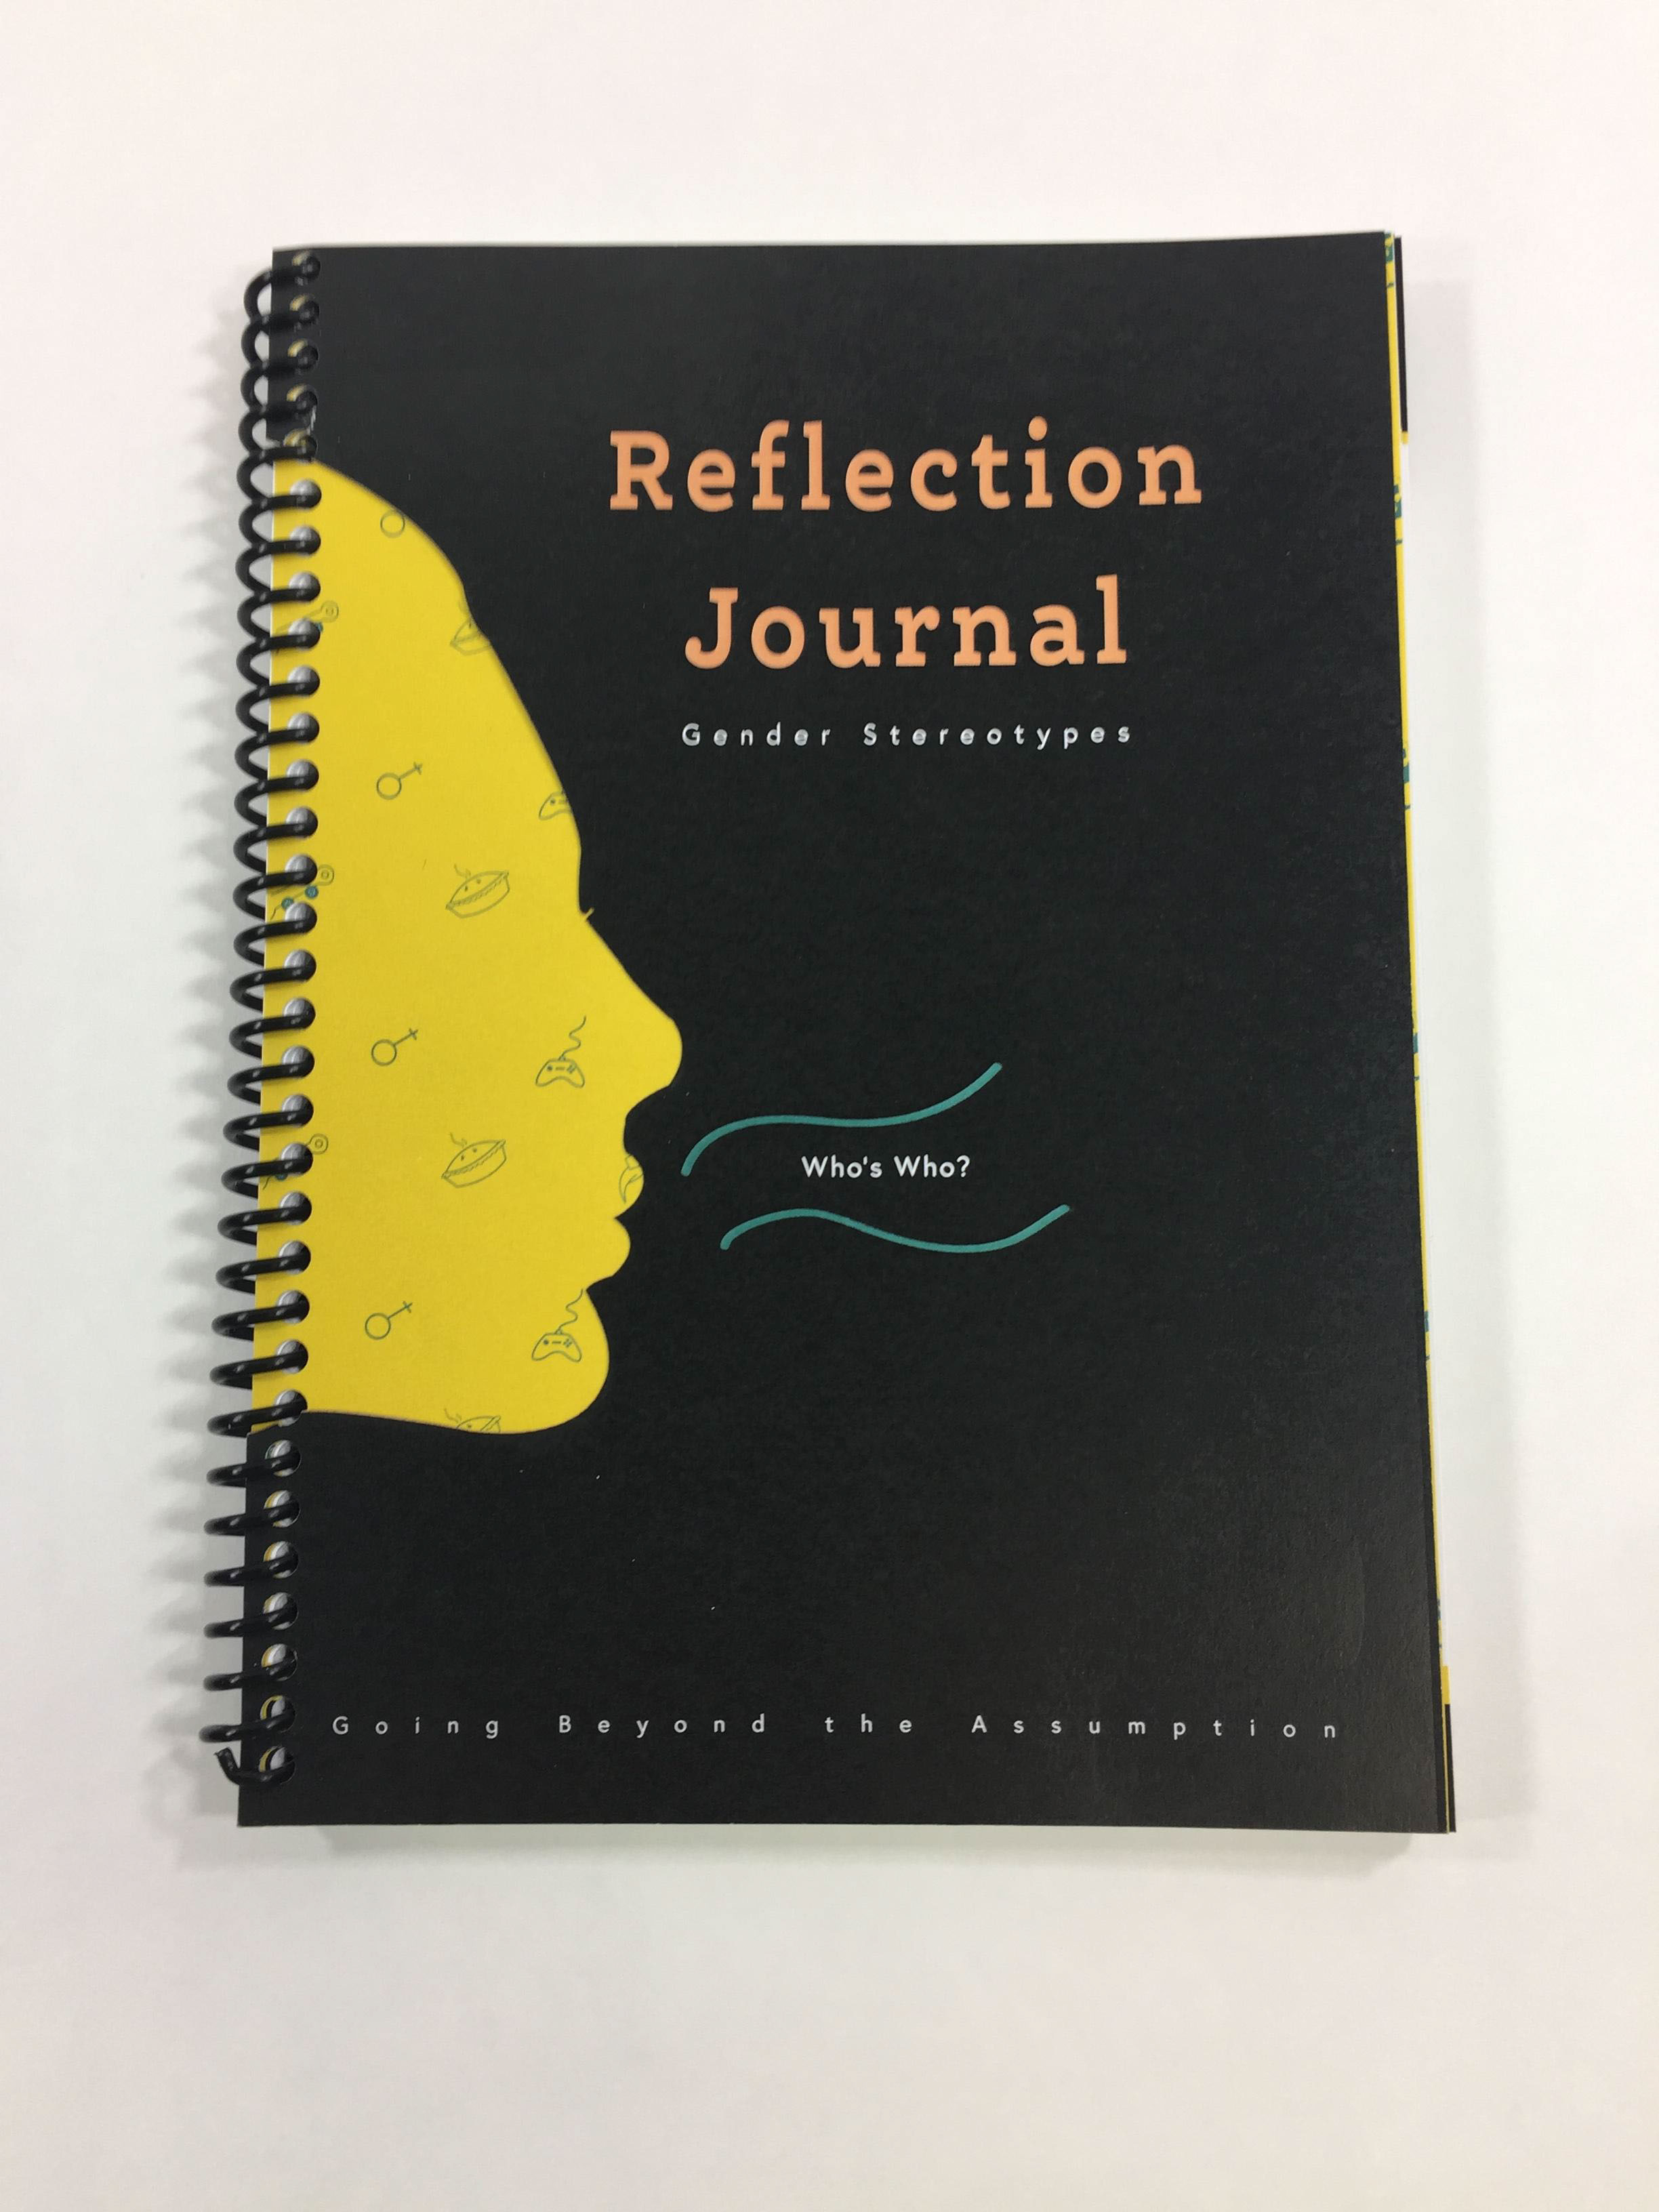 reflective journal listening The benefits of reflective journal writing april 11, 2017 charlotte van walraven 4 comments as a practicum student at mcgill's teaching and learning services, i have been examining the role of reflective journals in post-secondary classrooms.